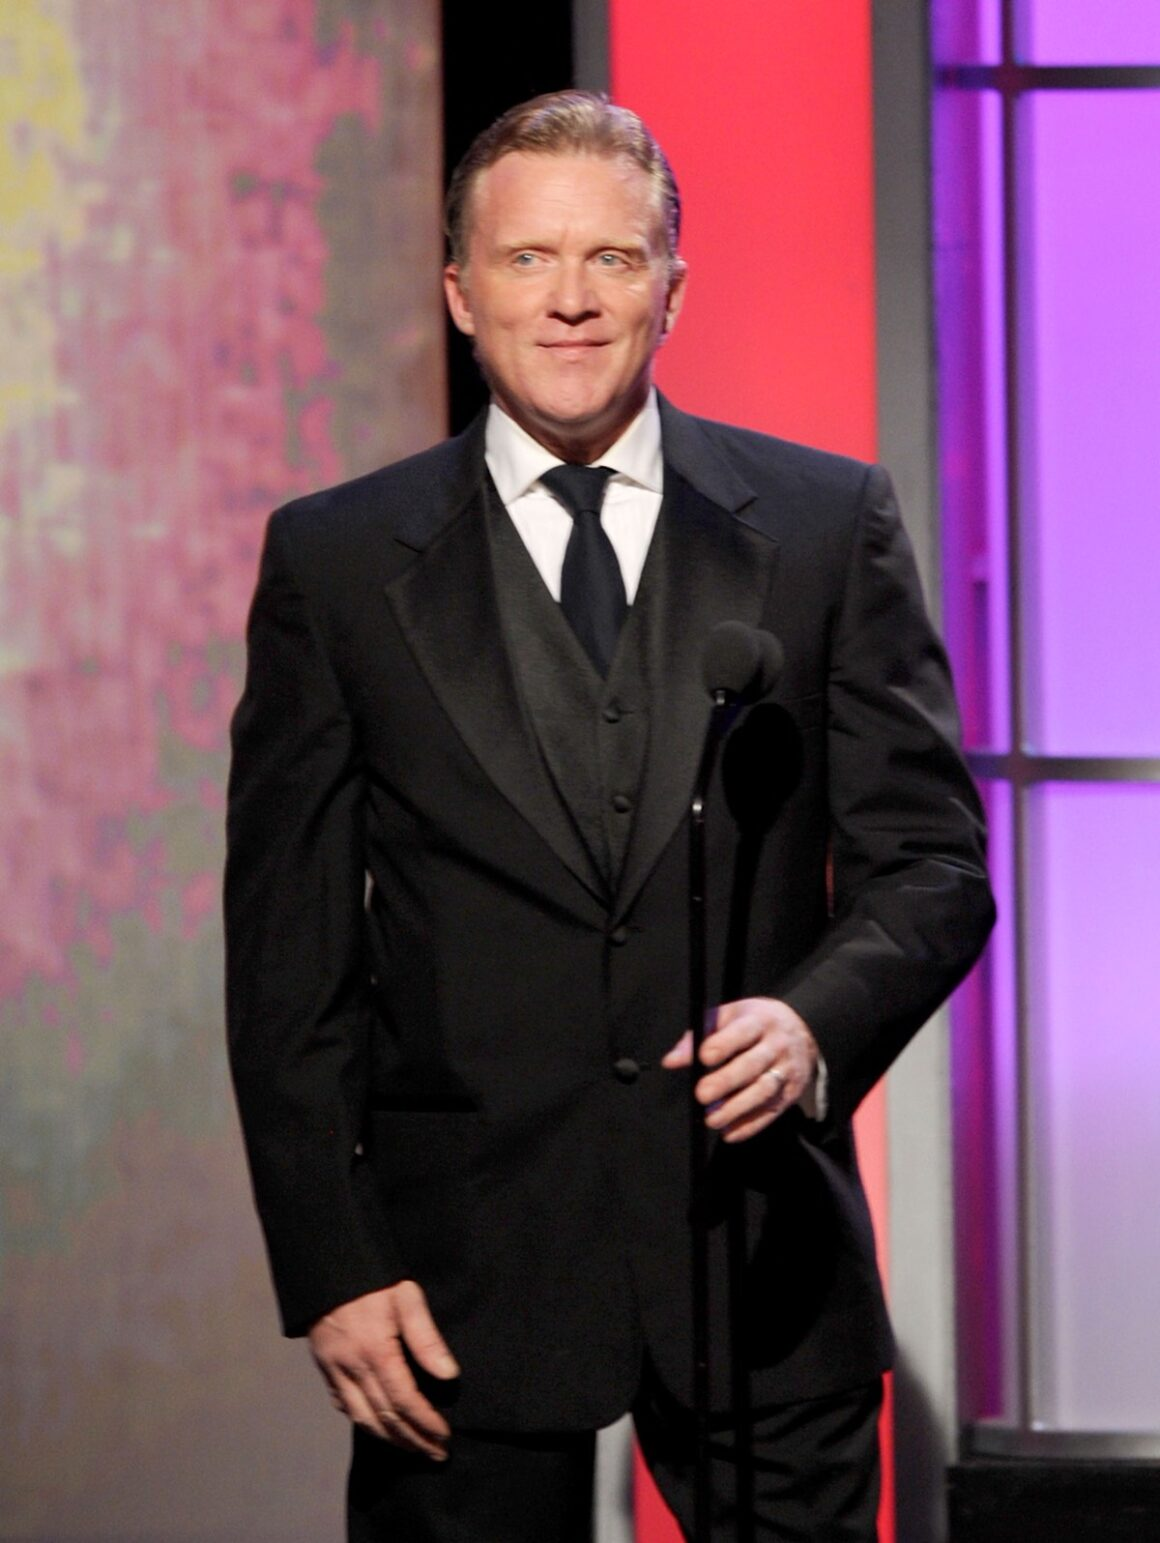 Anthony Michael Hall 25th American Cinematheque Award Honoring Robert Downey, Jr. - Show